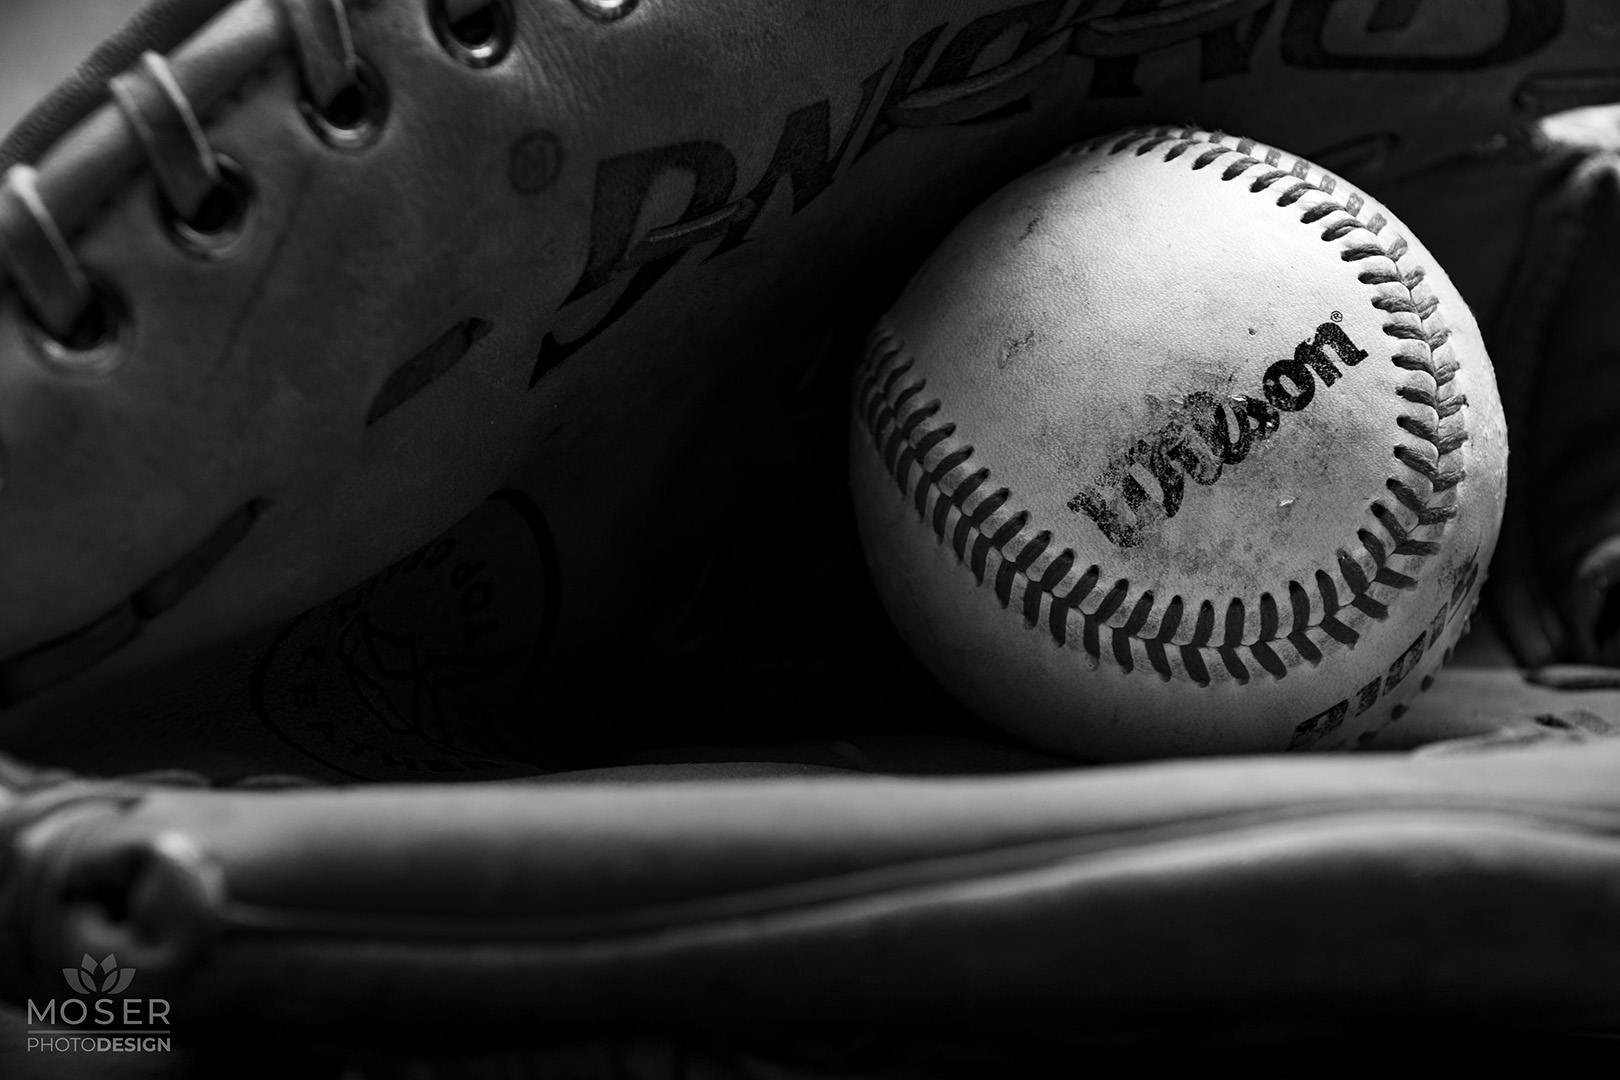 Alexis-Moser-Day-1-Softball-in-the-studio-Old-Mitt-3